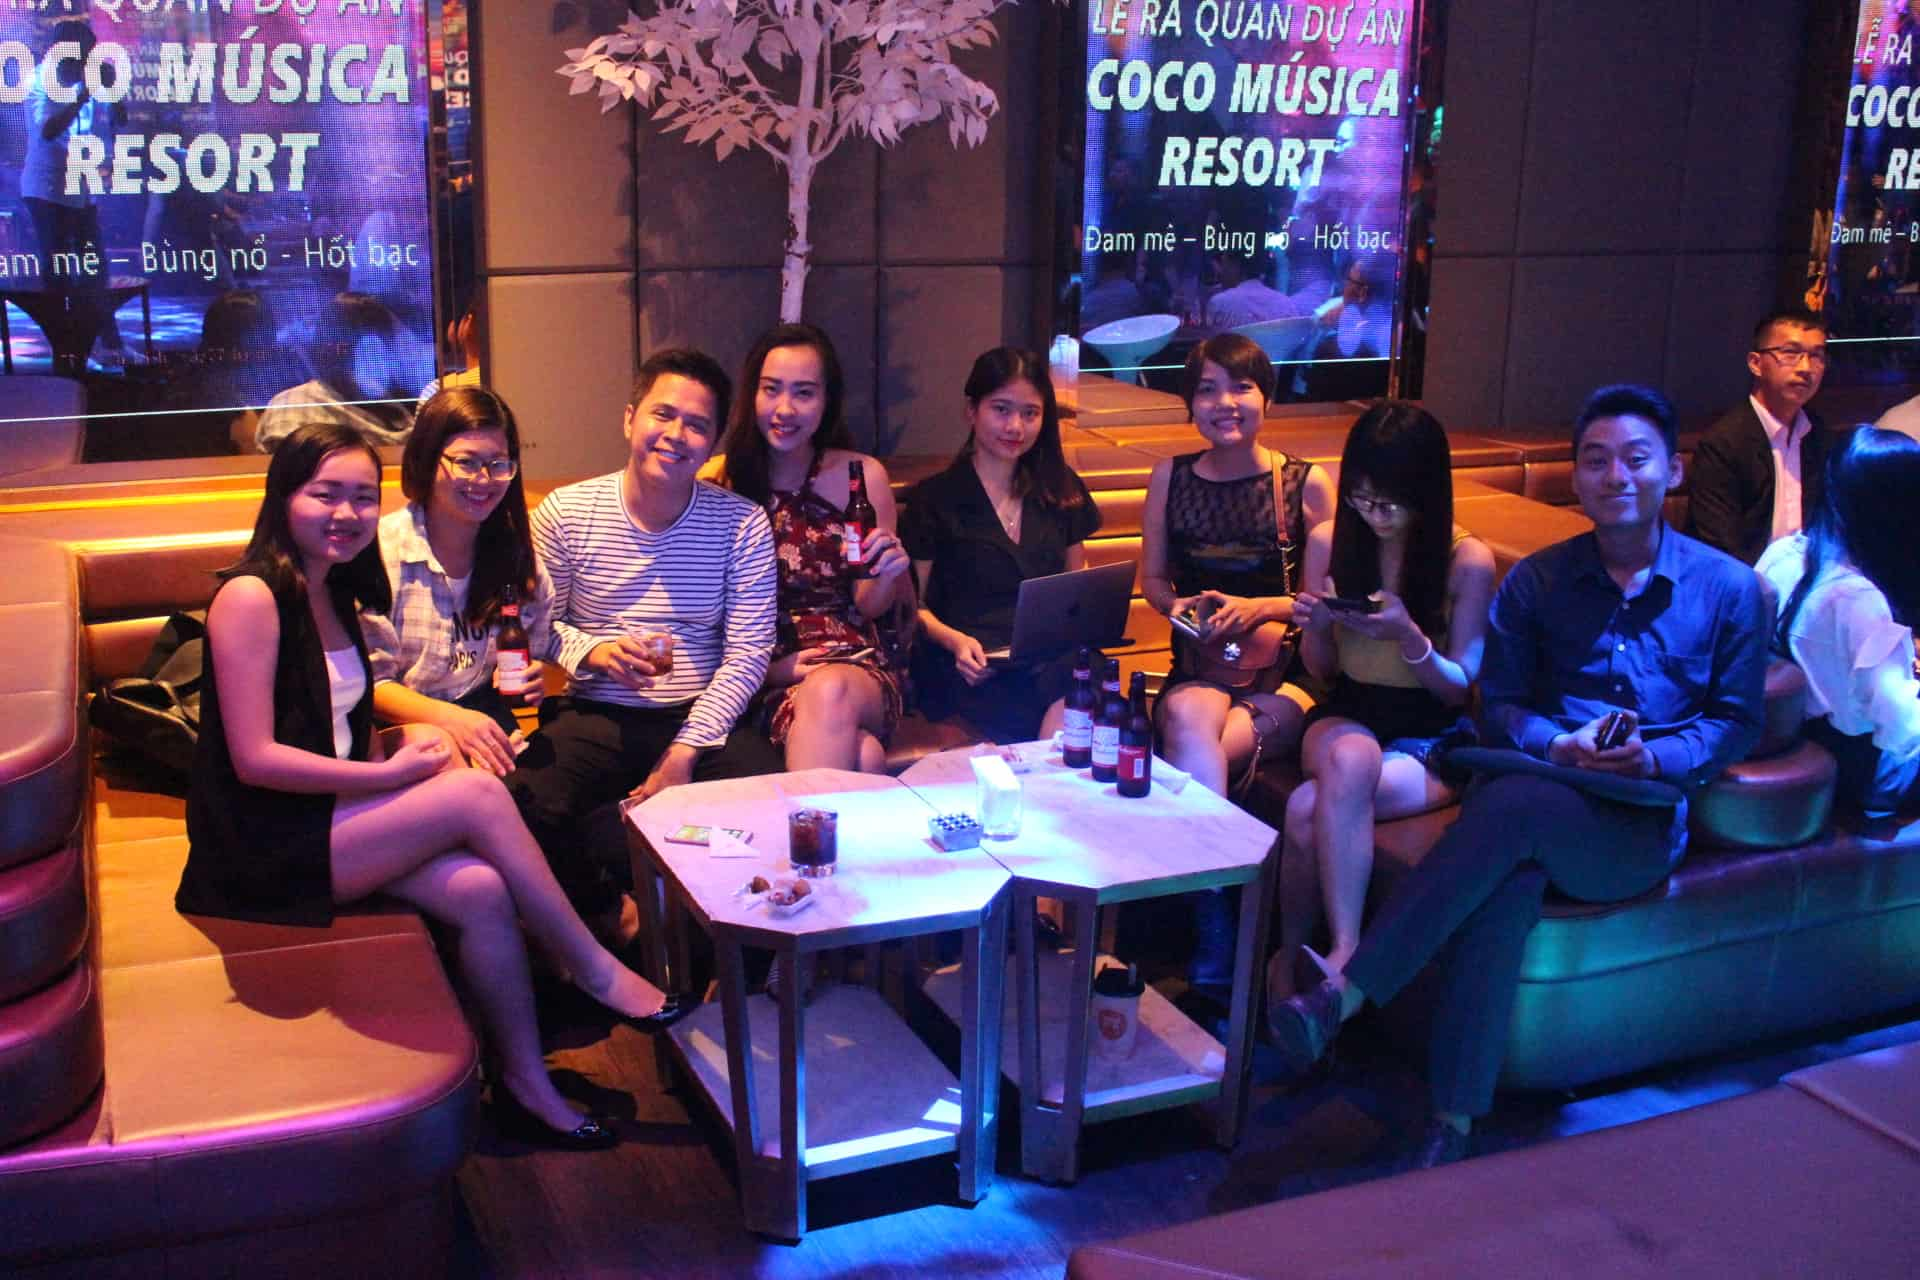 smartrealtors and partners tham gia le ra mat du an coco musica resort quay that sung – bung suc ban – don tet ung dung 10